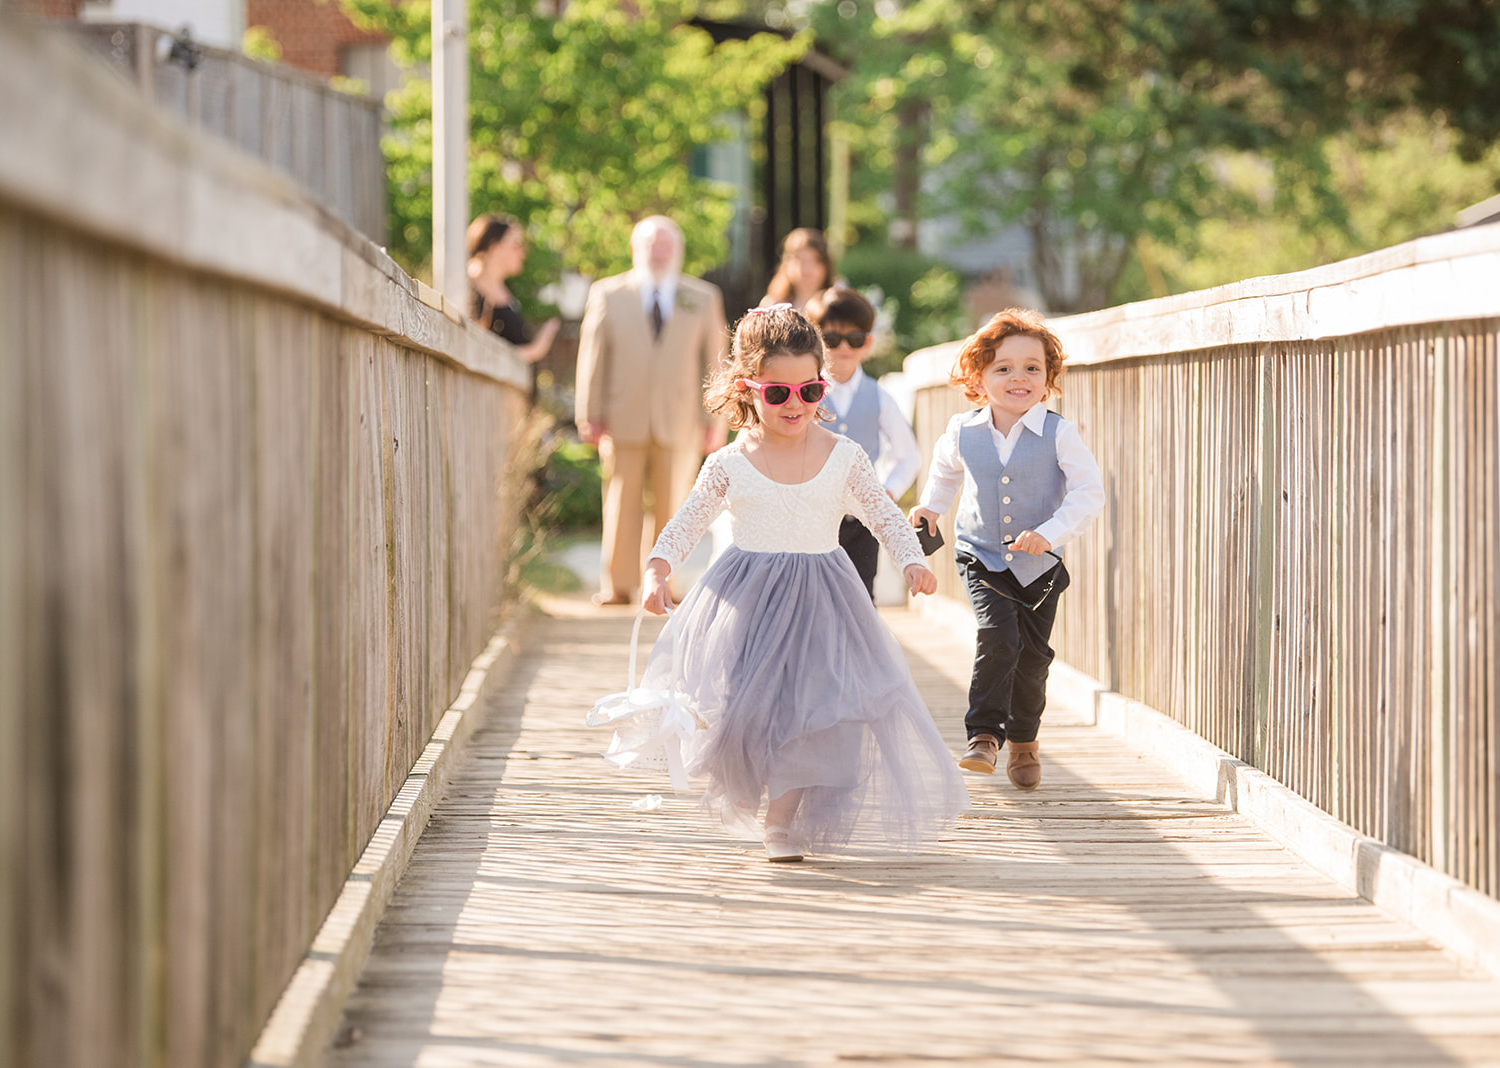 flower girl and ring boy walk down the aisle